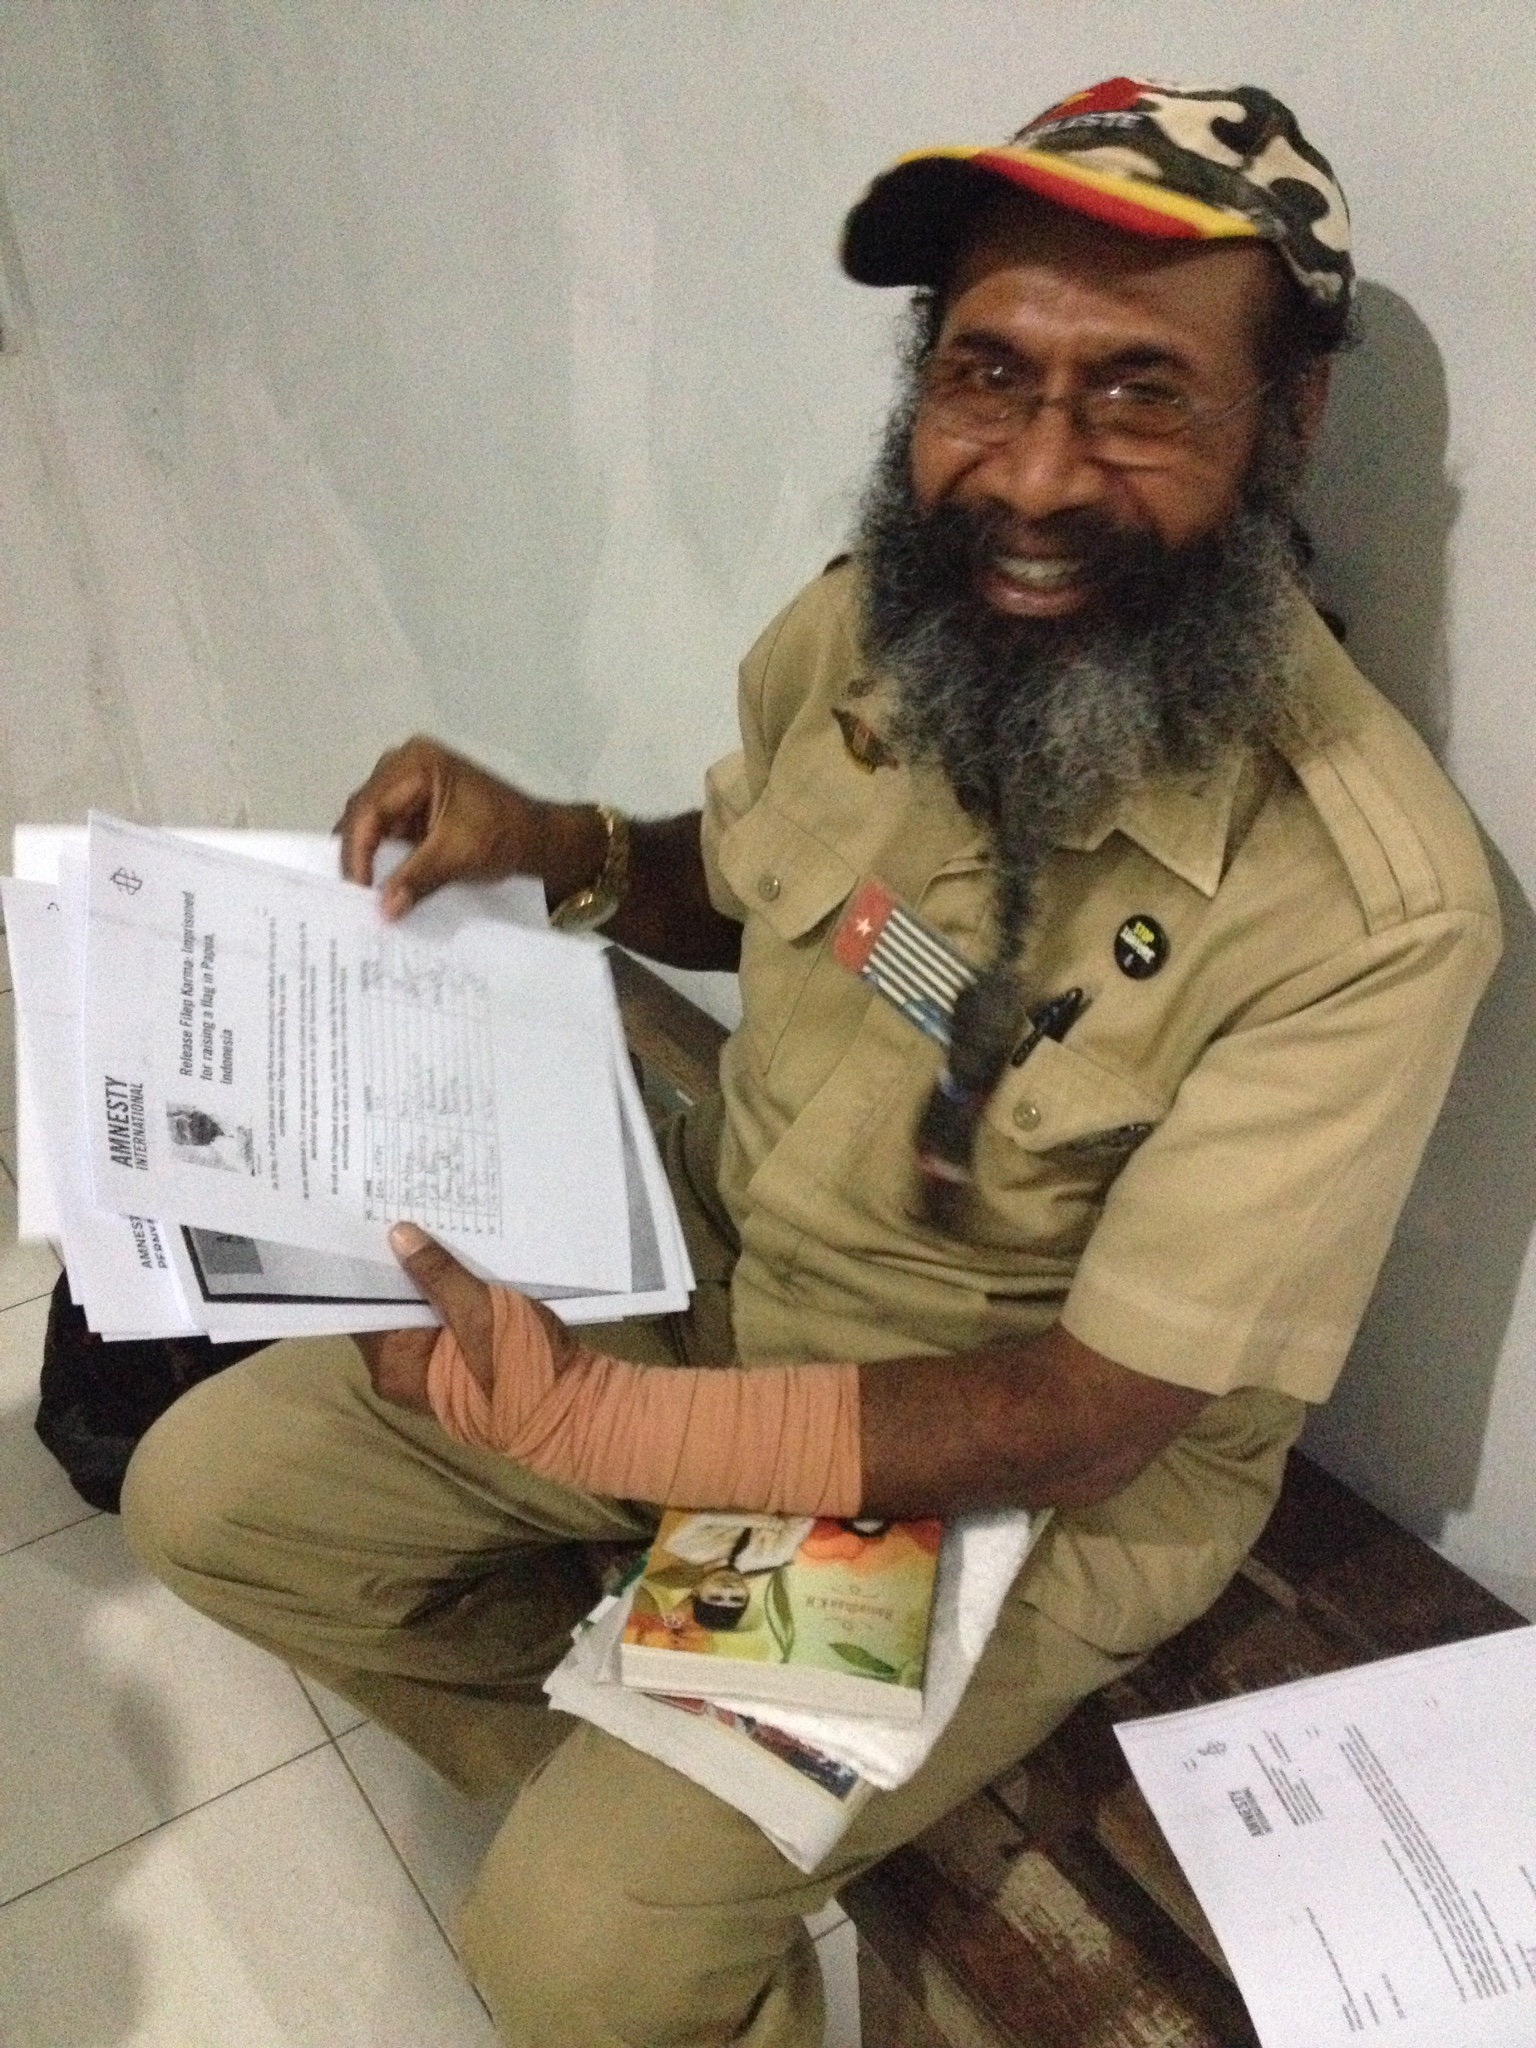 Filep Karma with petitions signed by Amnesty International activists calling for his release. He is smiling. Filep Karma is serving 15 years in prison for raising a flag. A prominent advocate for the rights of Indonesia's Papuan population, Filep Karma was arrested for taking part in a peaceful ceremony on December 1, 2004, which included the raising of the Morning Star flag, a Papuan symbol. Amnesty International considers Filep Karma to be a prisoner of conscience who has been imprisoned solely for the peaceful and legitimate exercise of his right to freedom of expression.